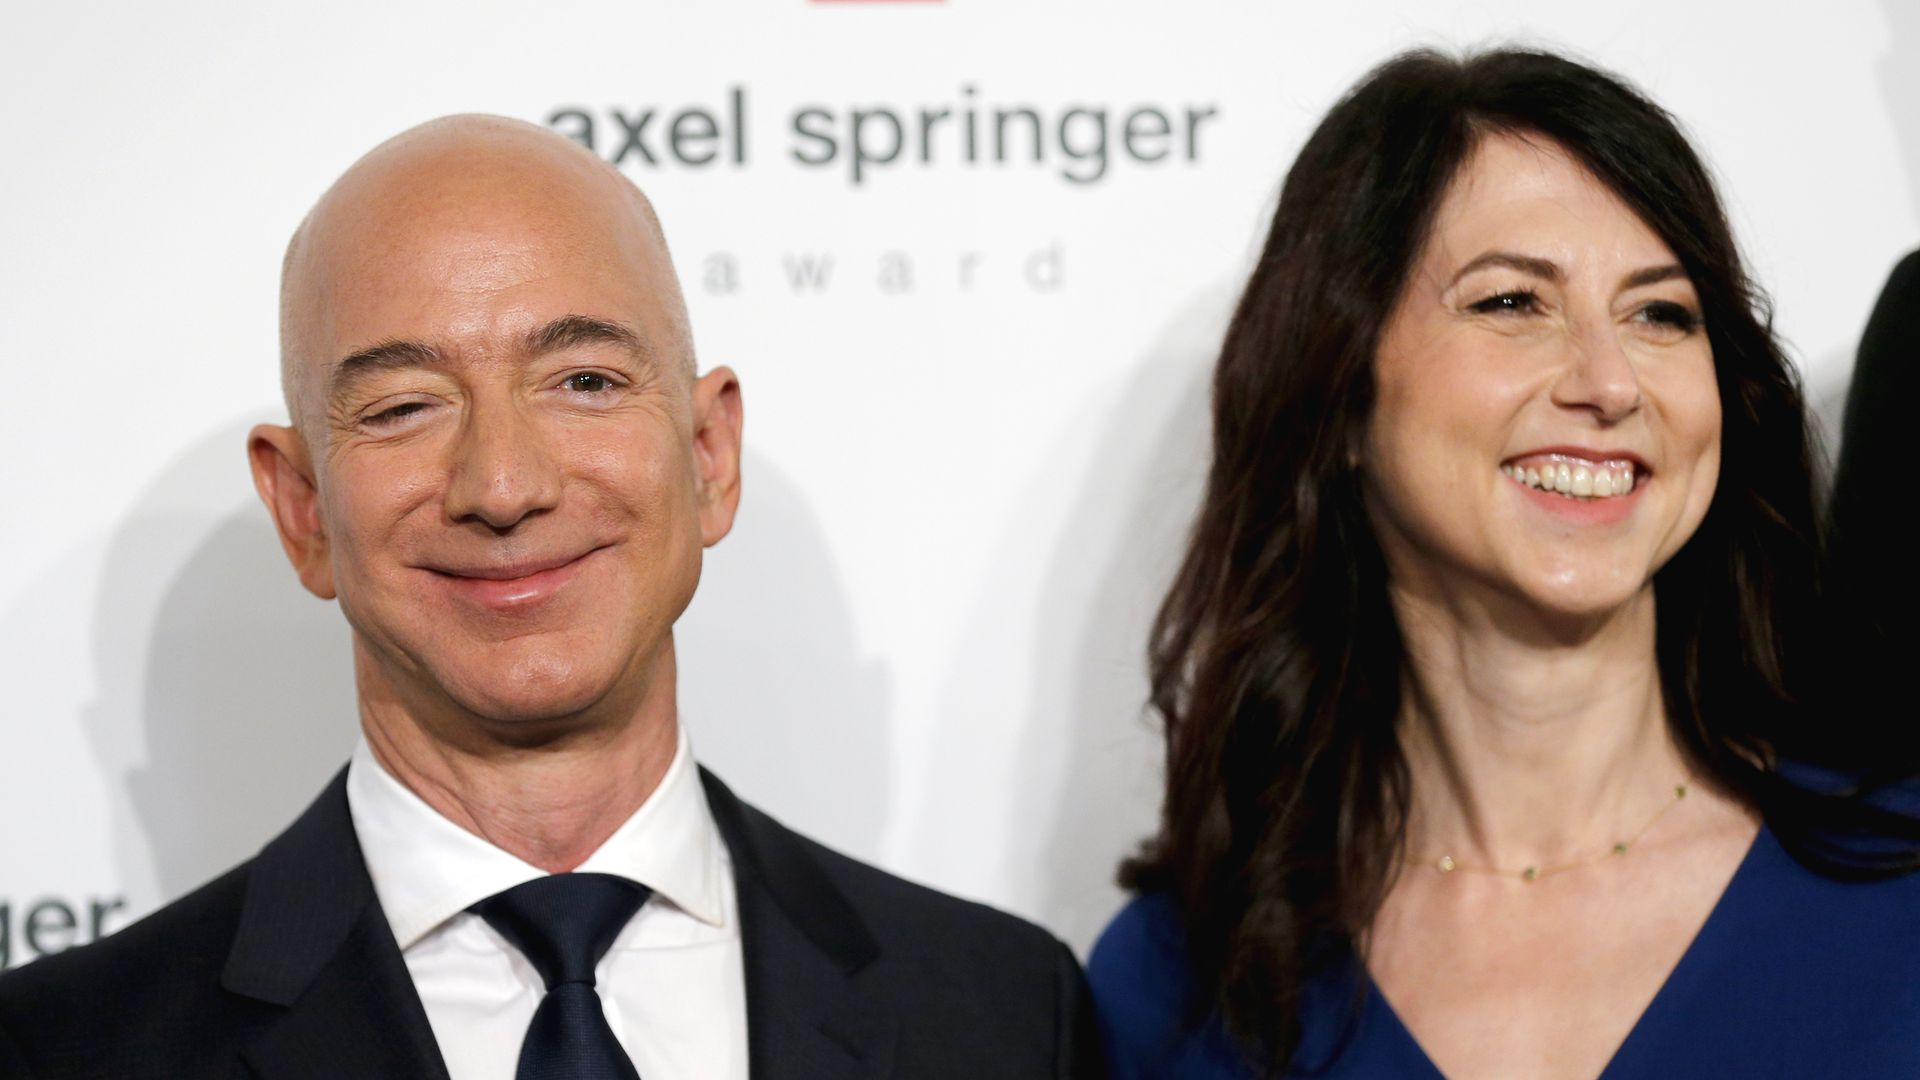 Jeff Bezos stands next to his wife MacKenzie